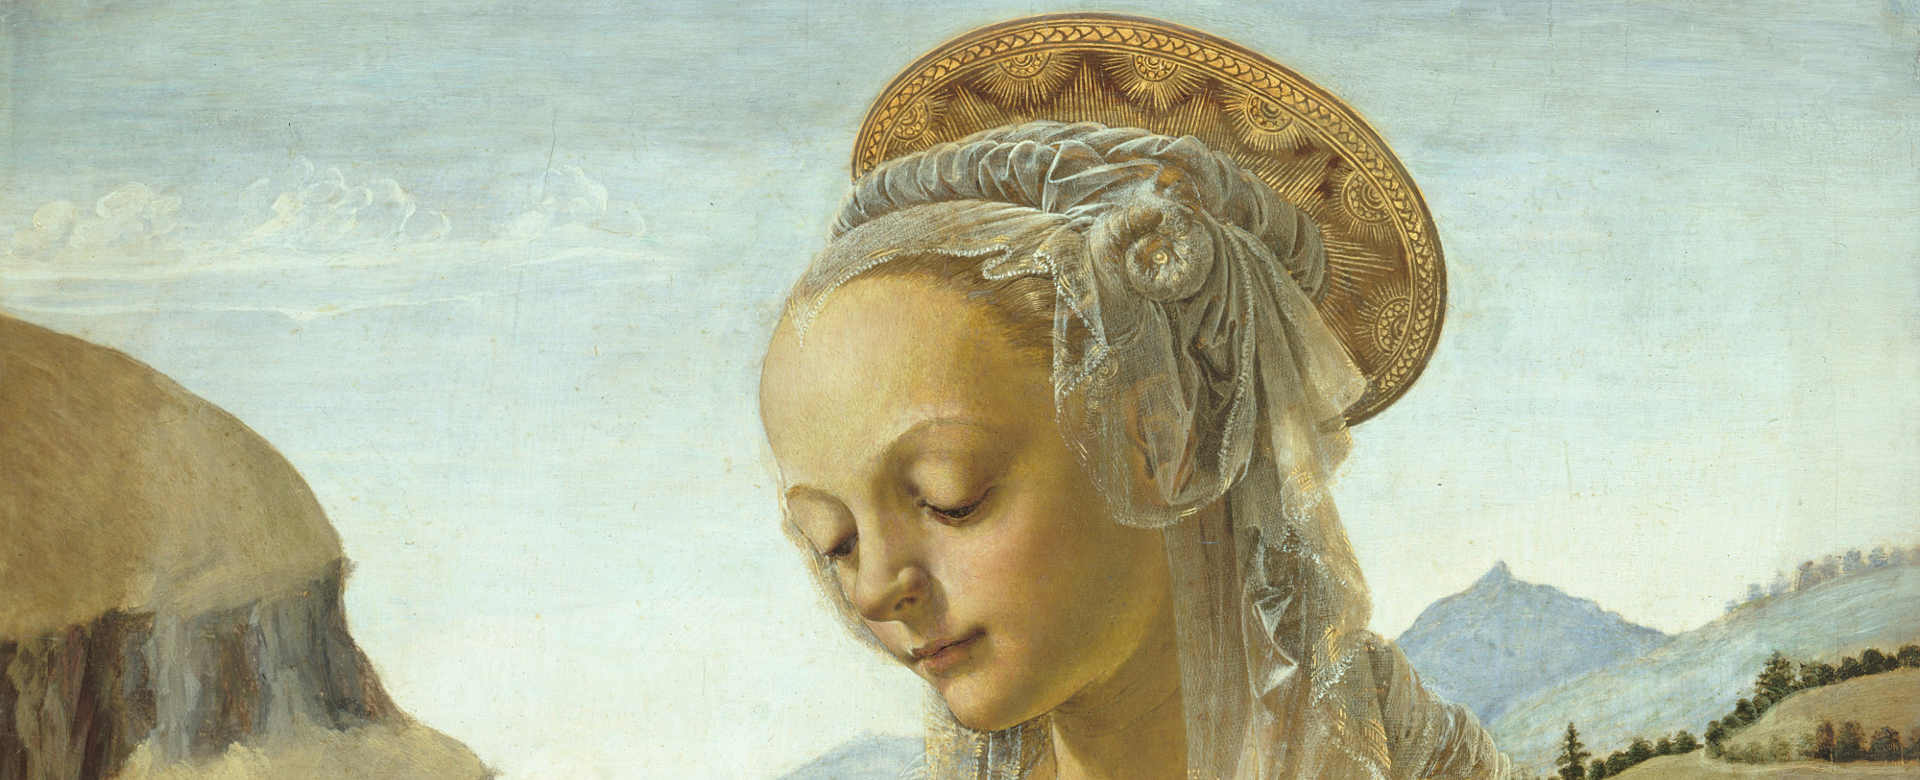 Verrocchio Master of Leonardo Exhibition in Florence